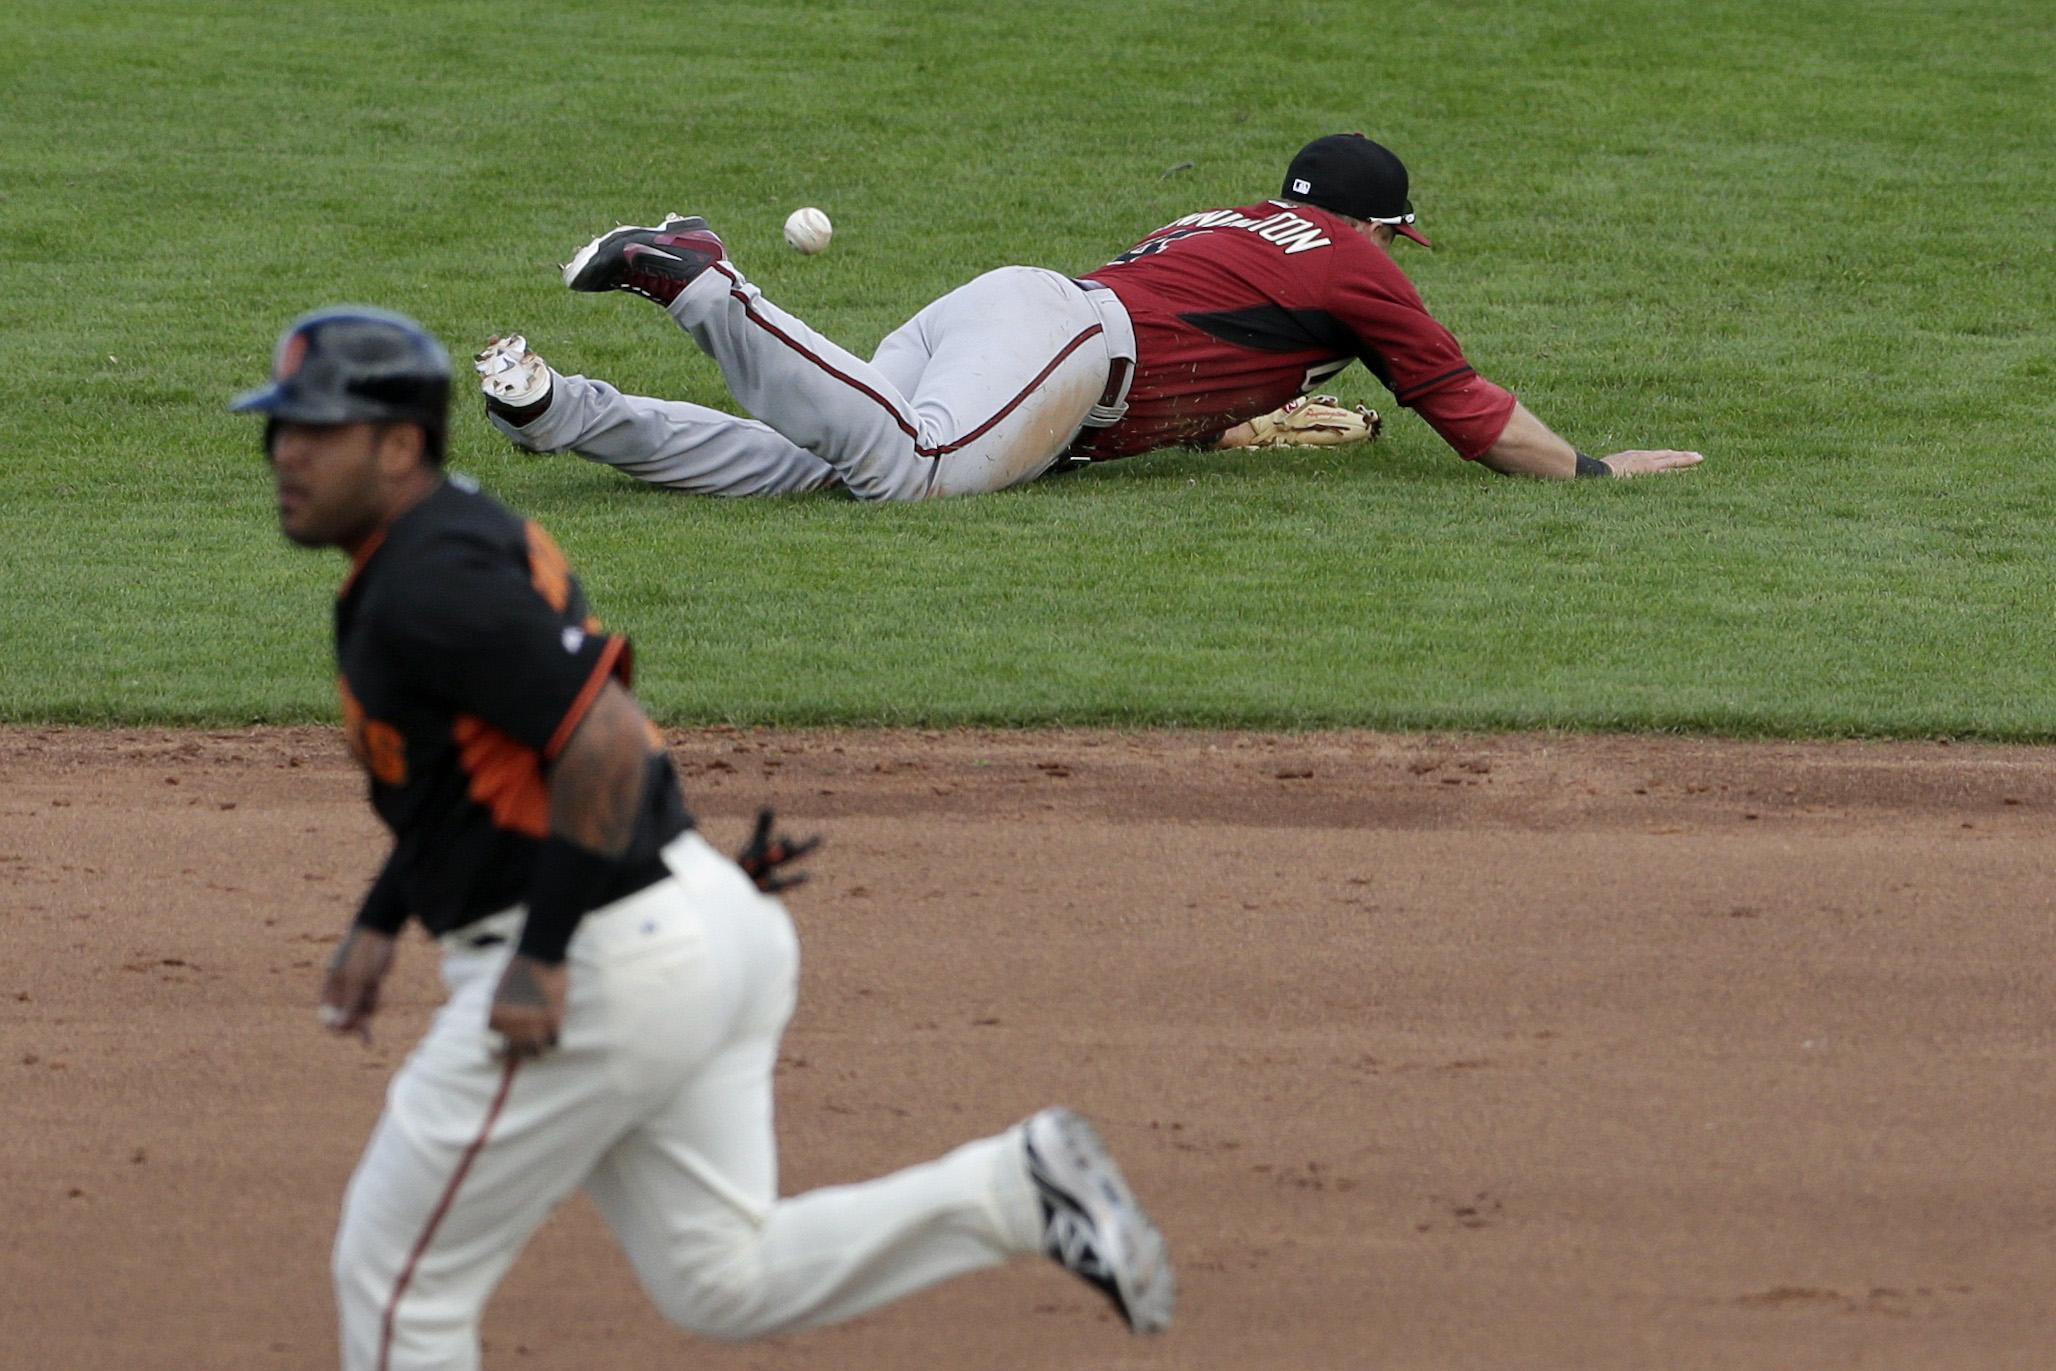 Arizona Diamondbacks shortstop Cliff Pennington, can't reach a hit for a single by San Francisco Giants' Joaquin Arias as the Giants' Hector Sanchez, below, makes his way to second base during the fifth inning of a spring training baseball game Sunday, March 2, 2014, in Scottsdale, Ariz